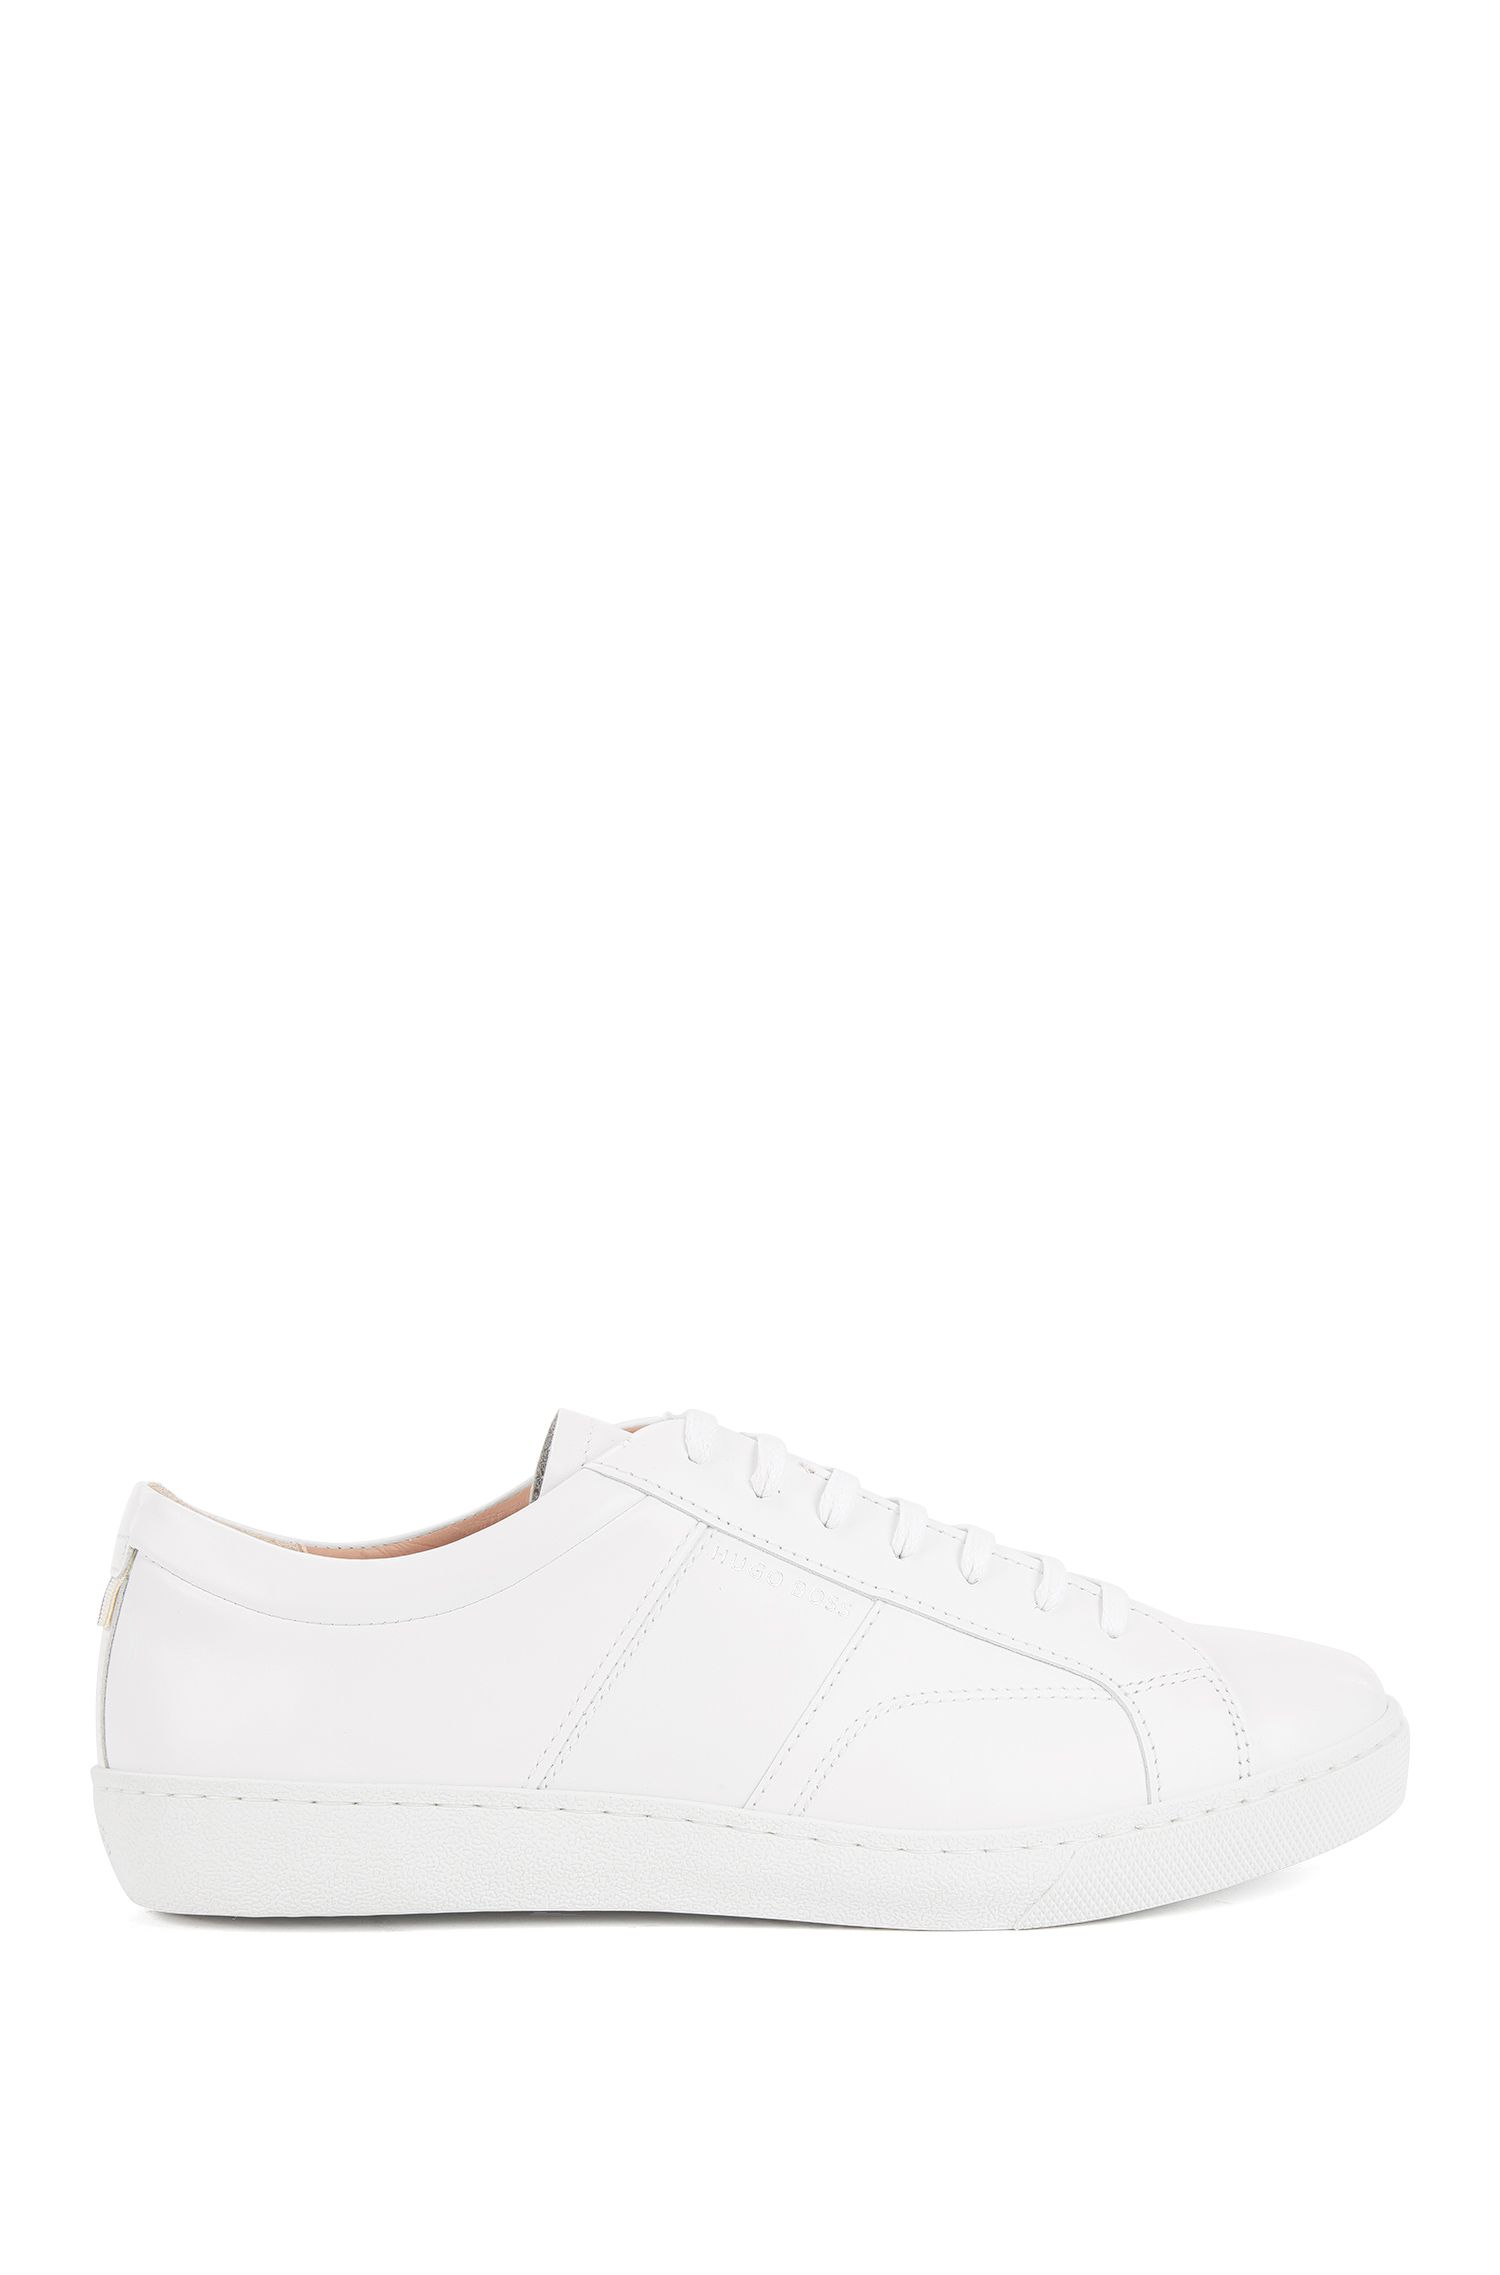 Sneakers low-top in pelle realizzata in Italia